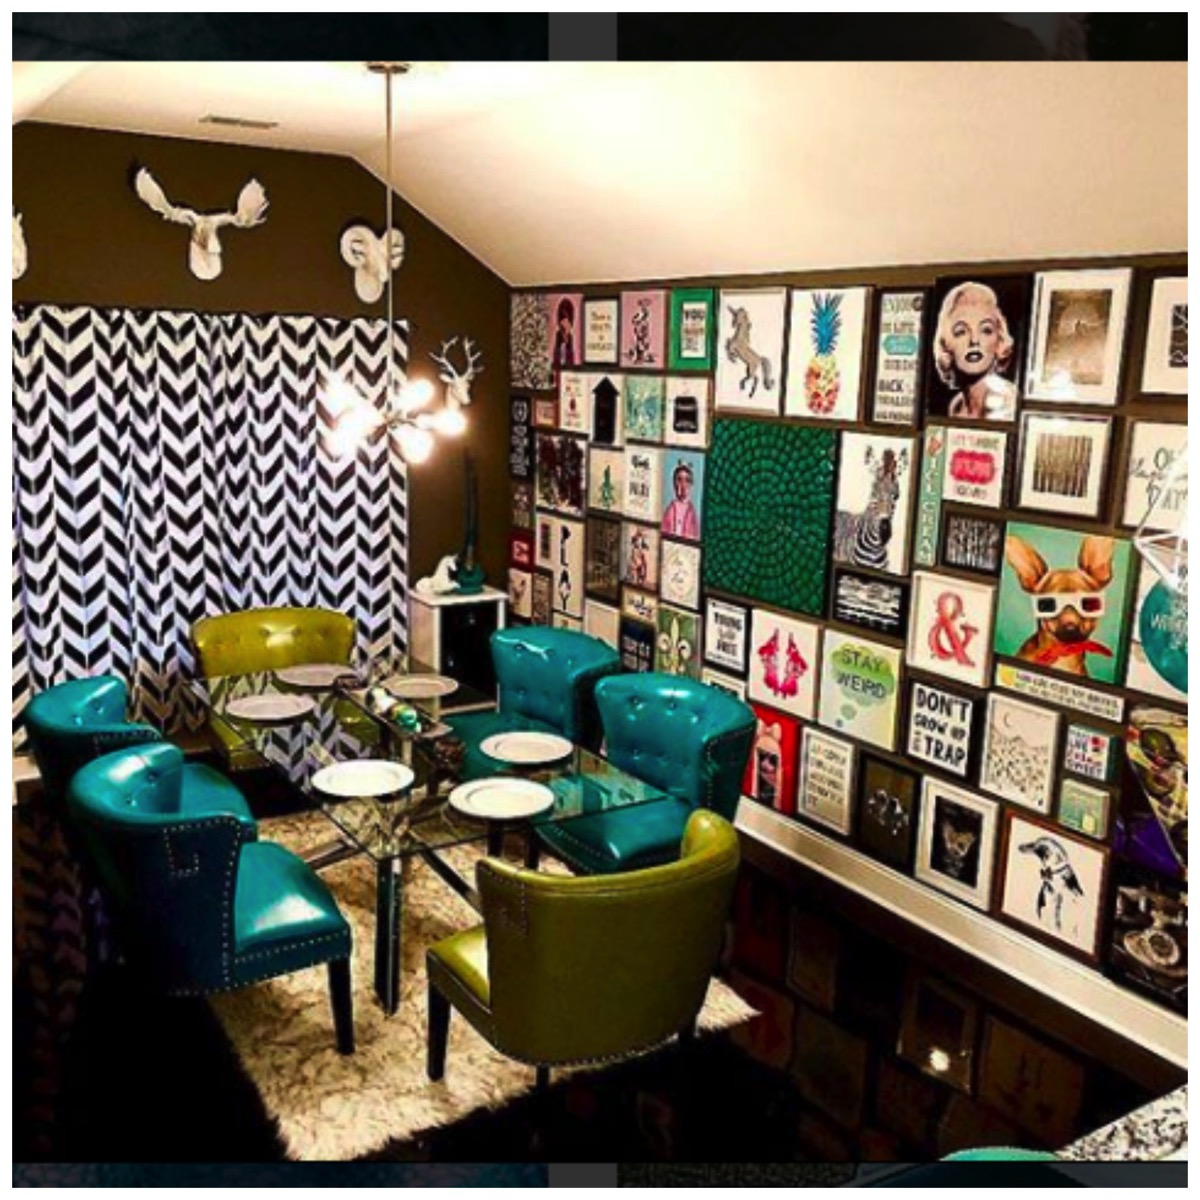 Teal kitchen chairs and dinning room gallery wall